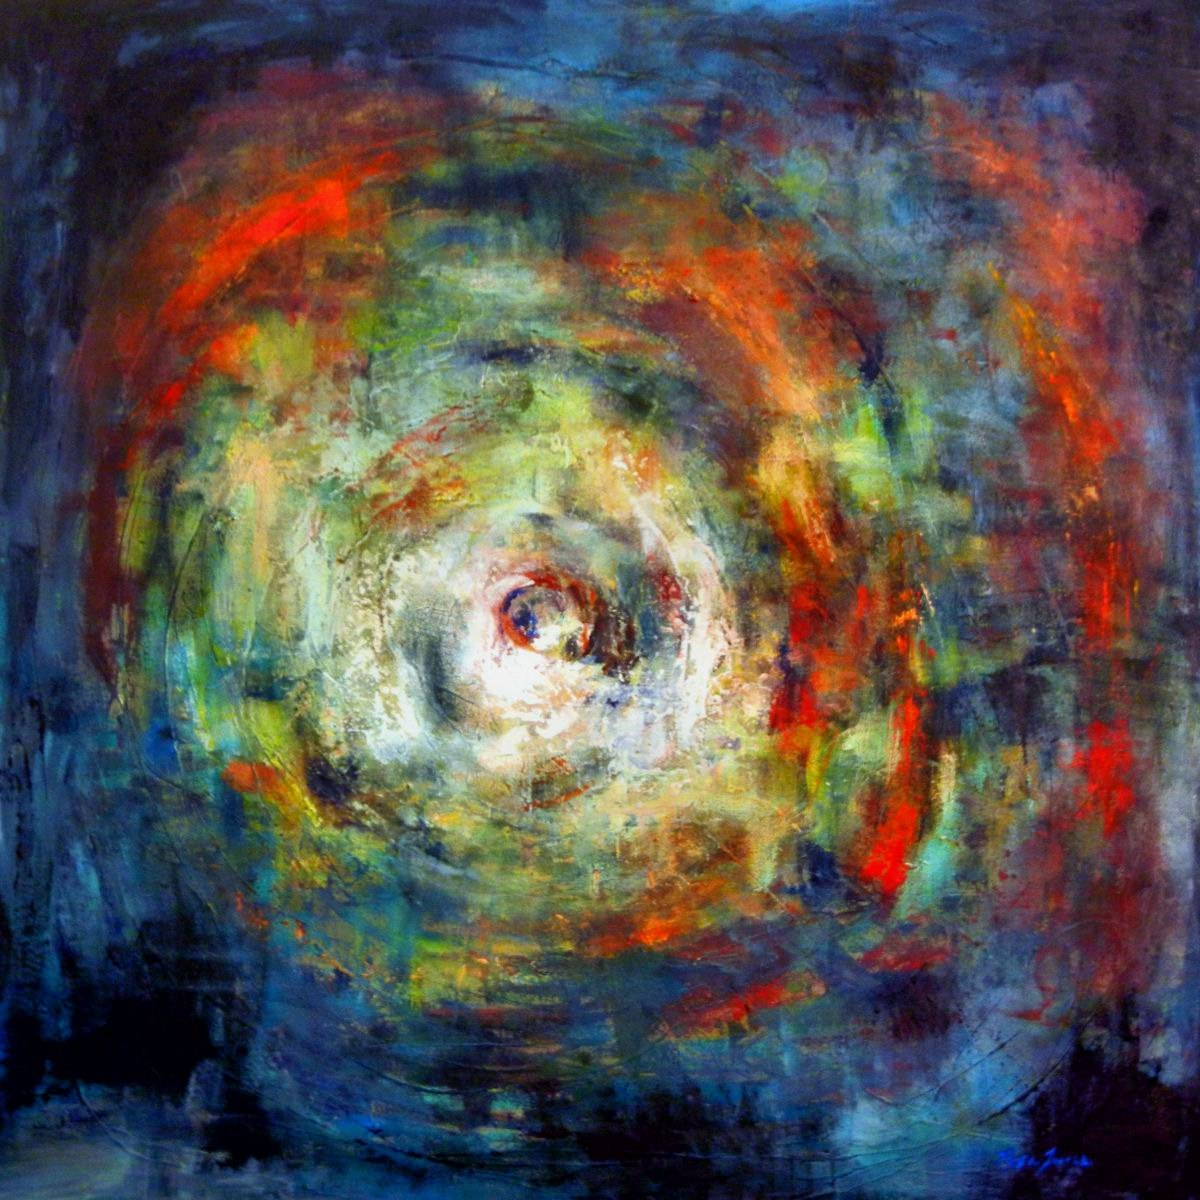 Huge Vortex Art Abstract Painting On Canvas – 48X48 – Modern Wall Regarding Most Recently Released 48X48 Canvas Wall Art (View 13 of 20)